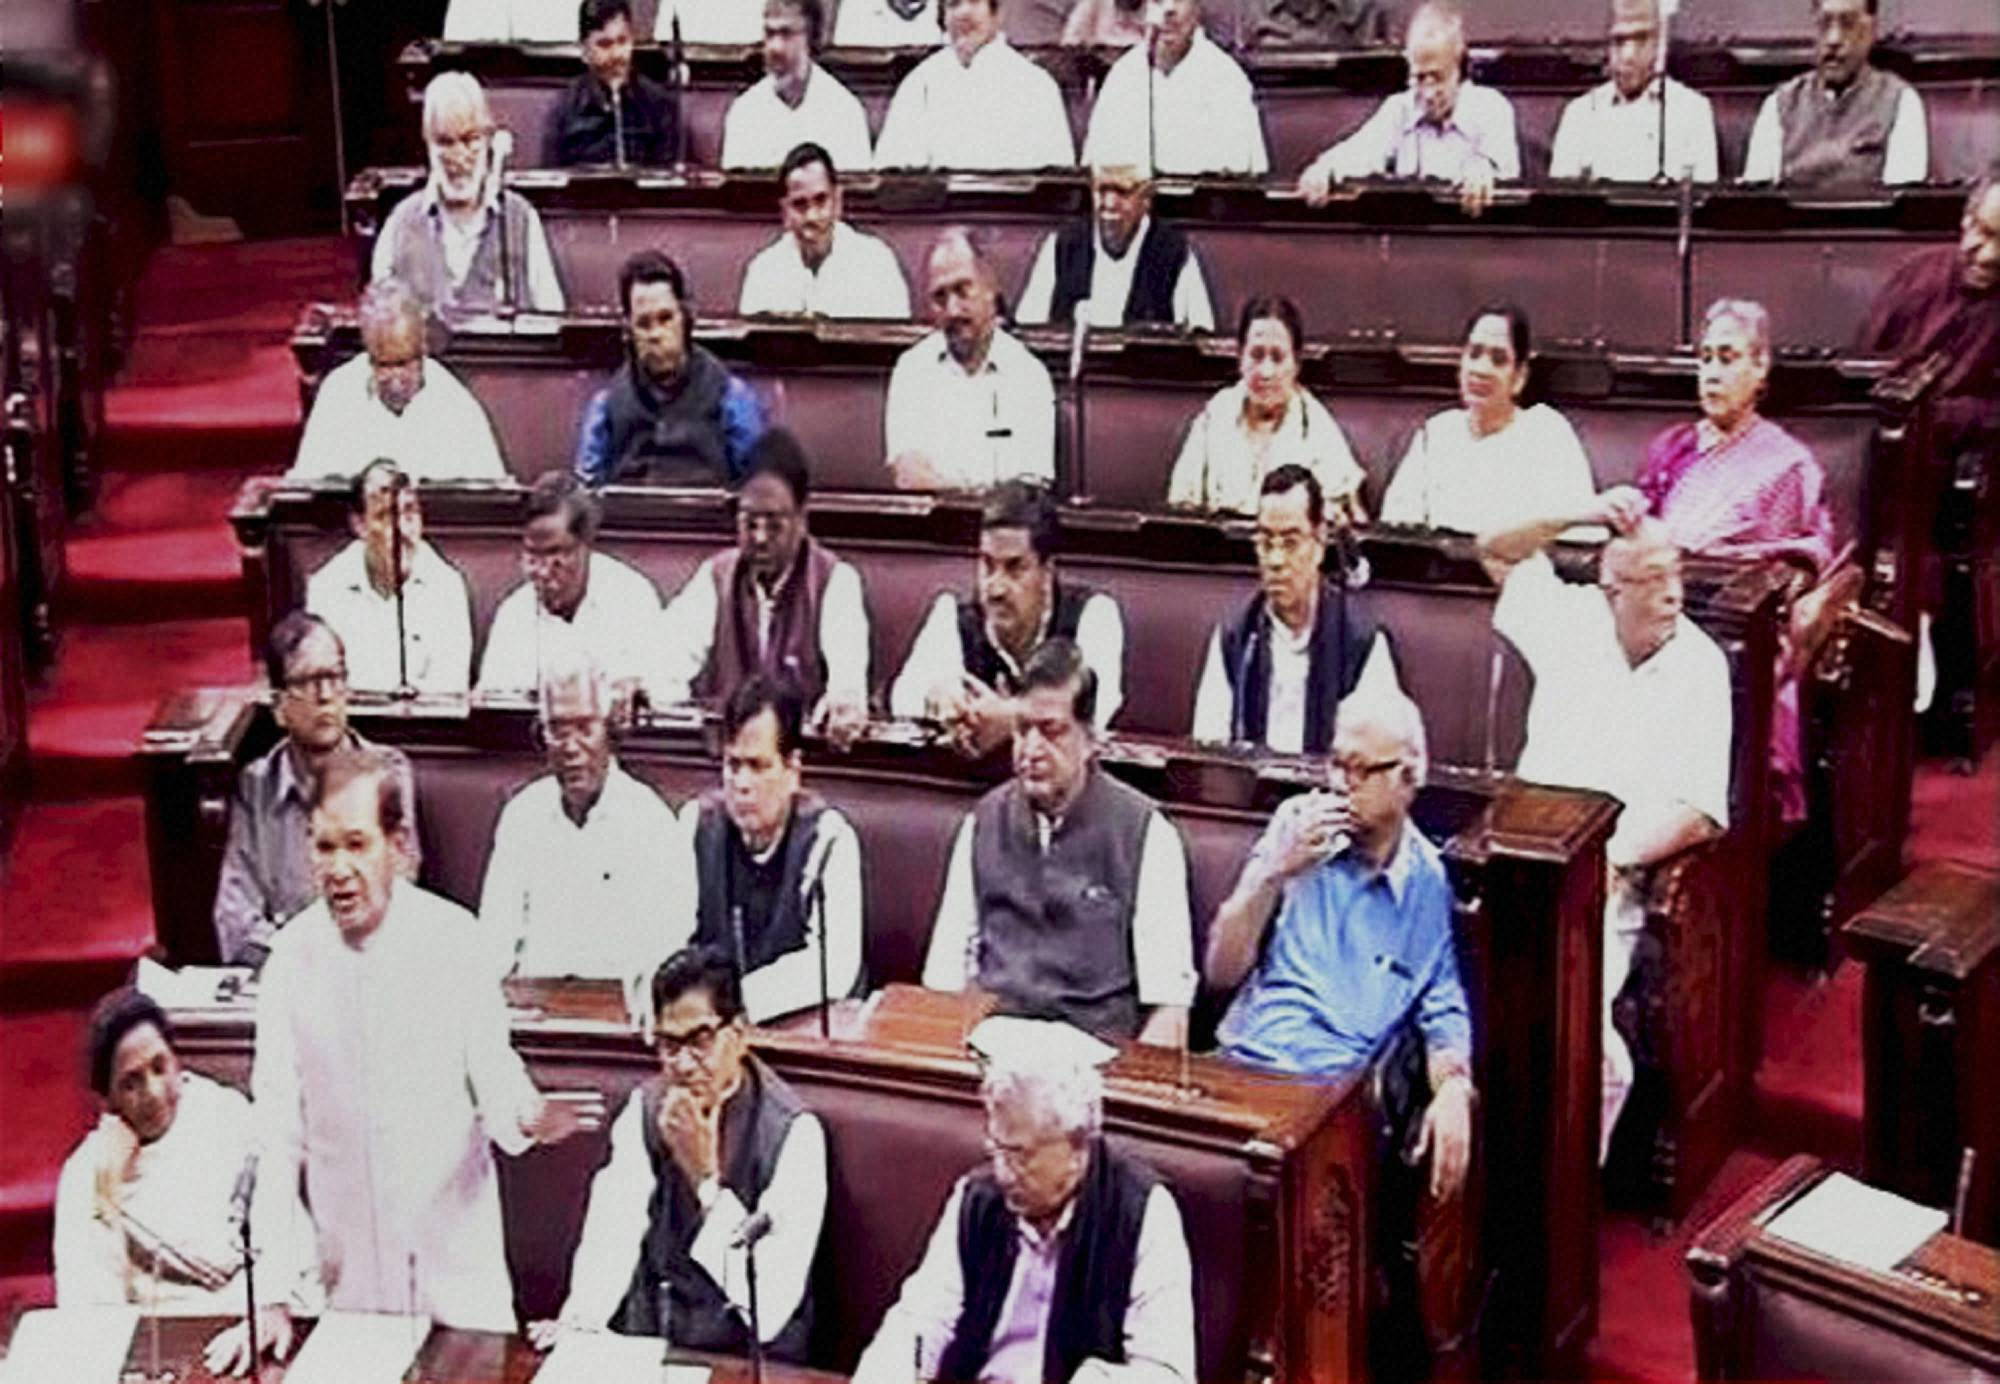 rajya sabha seats should be abolished says rajkumar saini